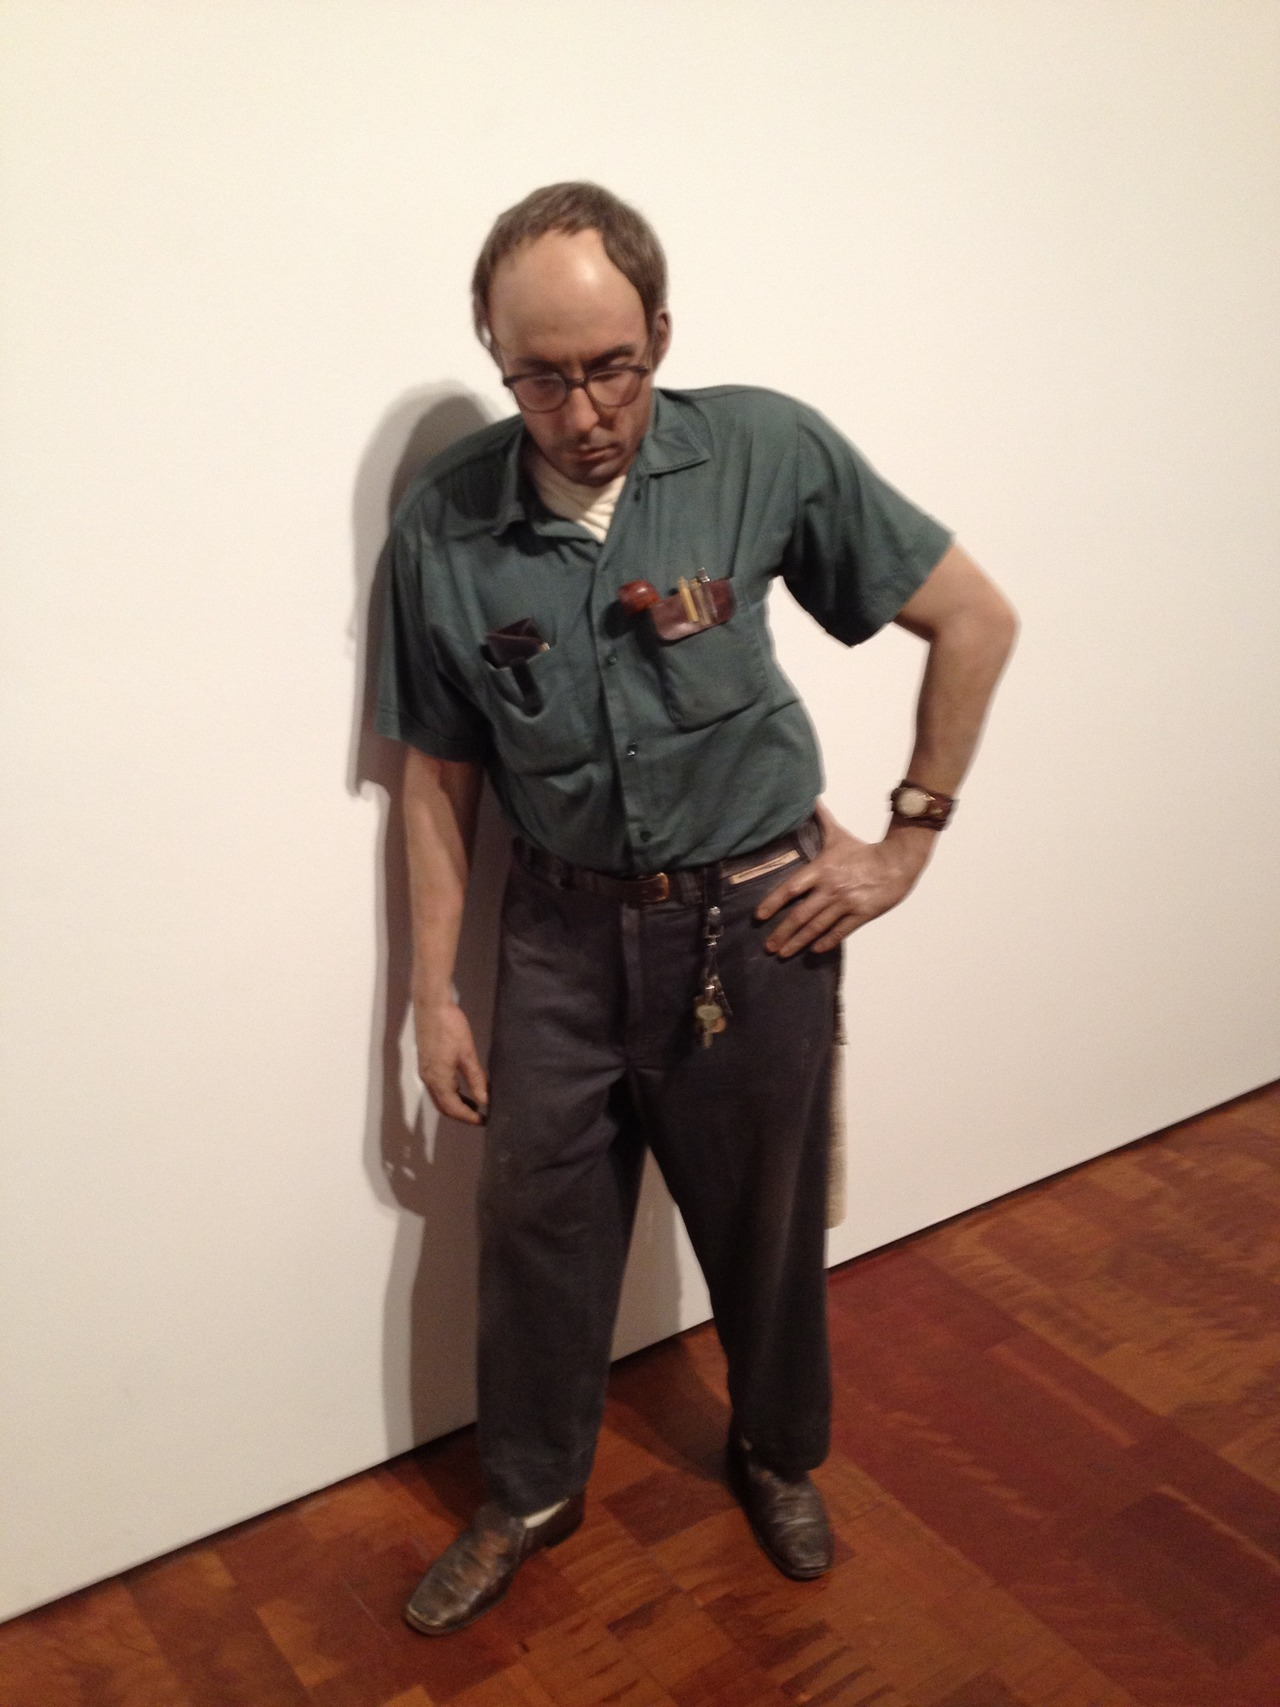 philolspice:  Duane Hanson (1925-1996) Janitor 1973 Polyester, fiberglass, and mixed media Duane Hanson is well known for his hyper-realistic figures made of polyester and cast fiberglass, enhanced by real clothing, accessories and props. The realism of his sculptures draws the viewer in for a closer look and links Hanson with the Photorealist painters who also explored methods of copying as a form of image making. Hanson's intent, however, was not merely to reproduce reality but also to comment on the human condition. His subjects are ordinary people leading unremarkable lives-a cleaning lady, a woman shopping, a man mowing his lawn. the artist's desire to infuse an emotional quality into his figures is evident in the janitor.  The humpbacked figure dressed in his work clothes leans against the nearest support and stares downward with one hand on his hip. His blank expression signifies resignation and the hopelessness of those caught in the daily grind.